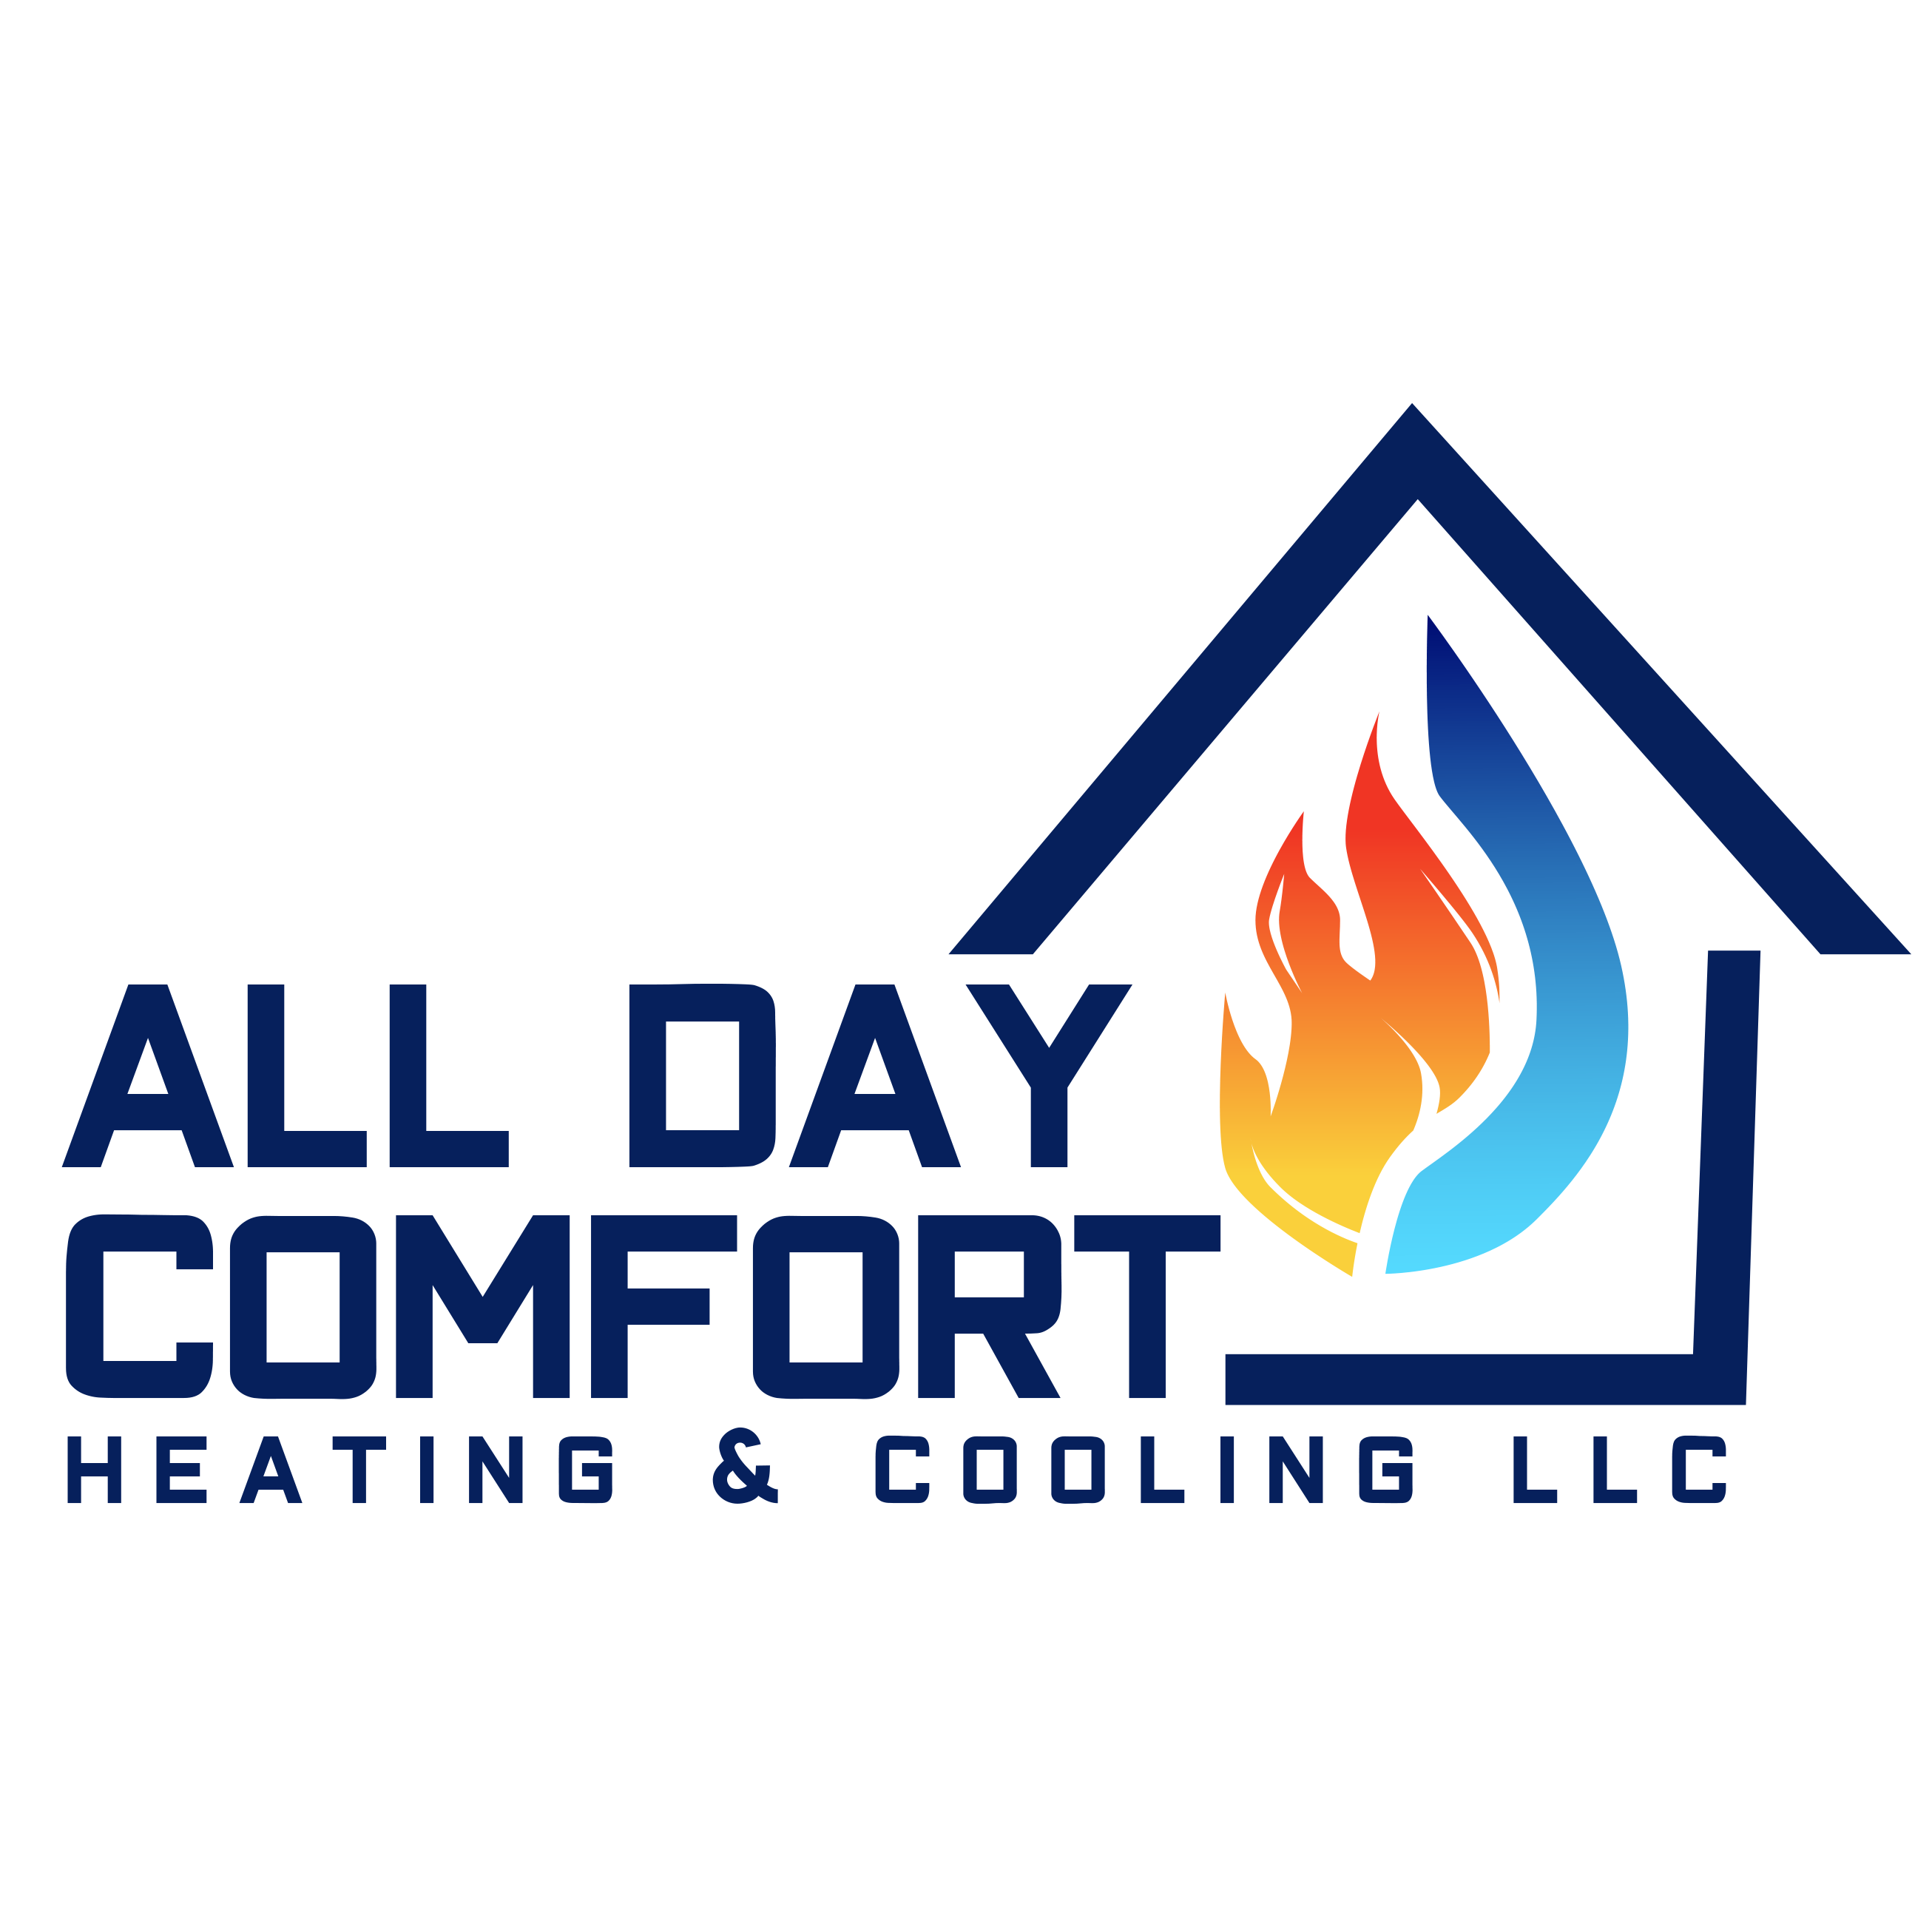 All Day Comfort Heating and Cooling